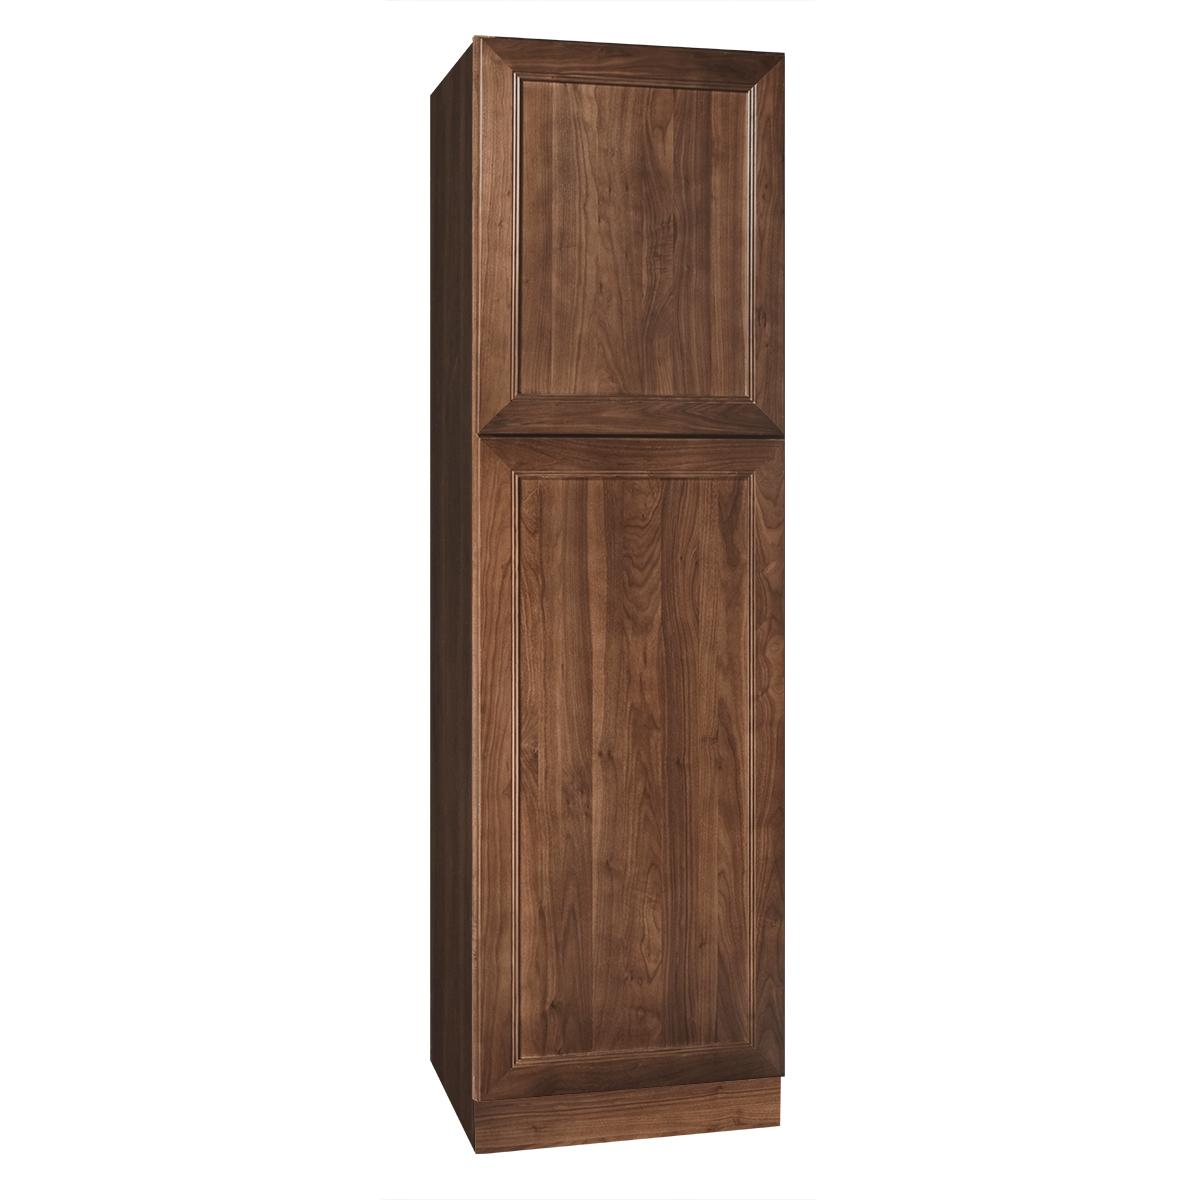 San Remo Series 24x84 Inch Tall Linen Cabinet Free